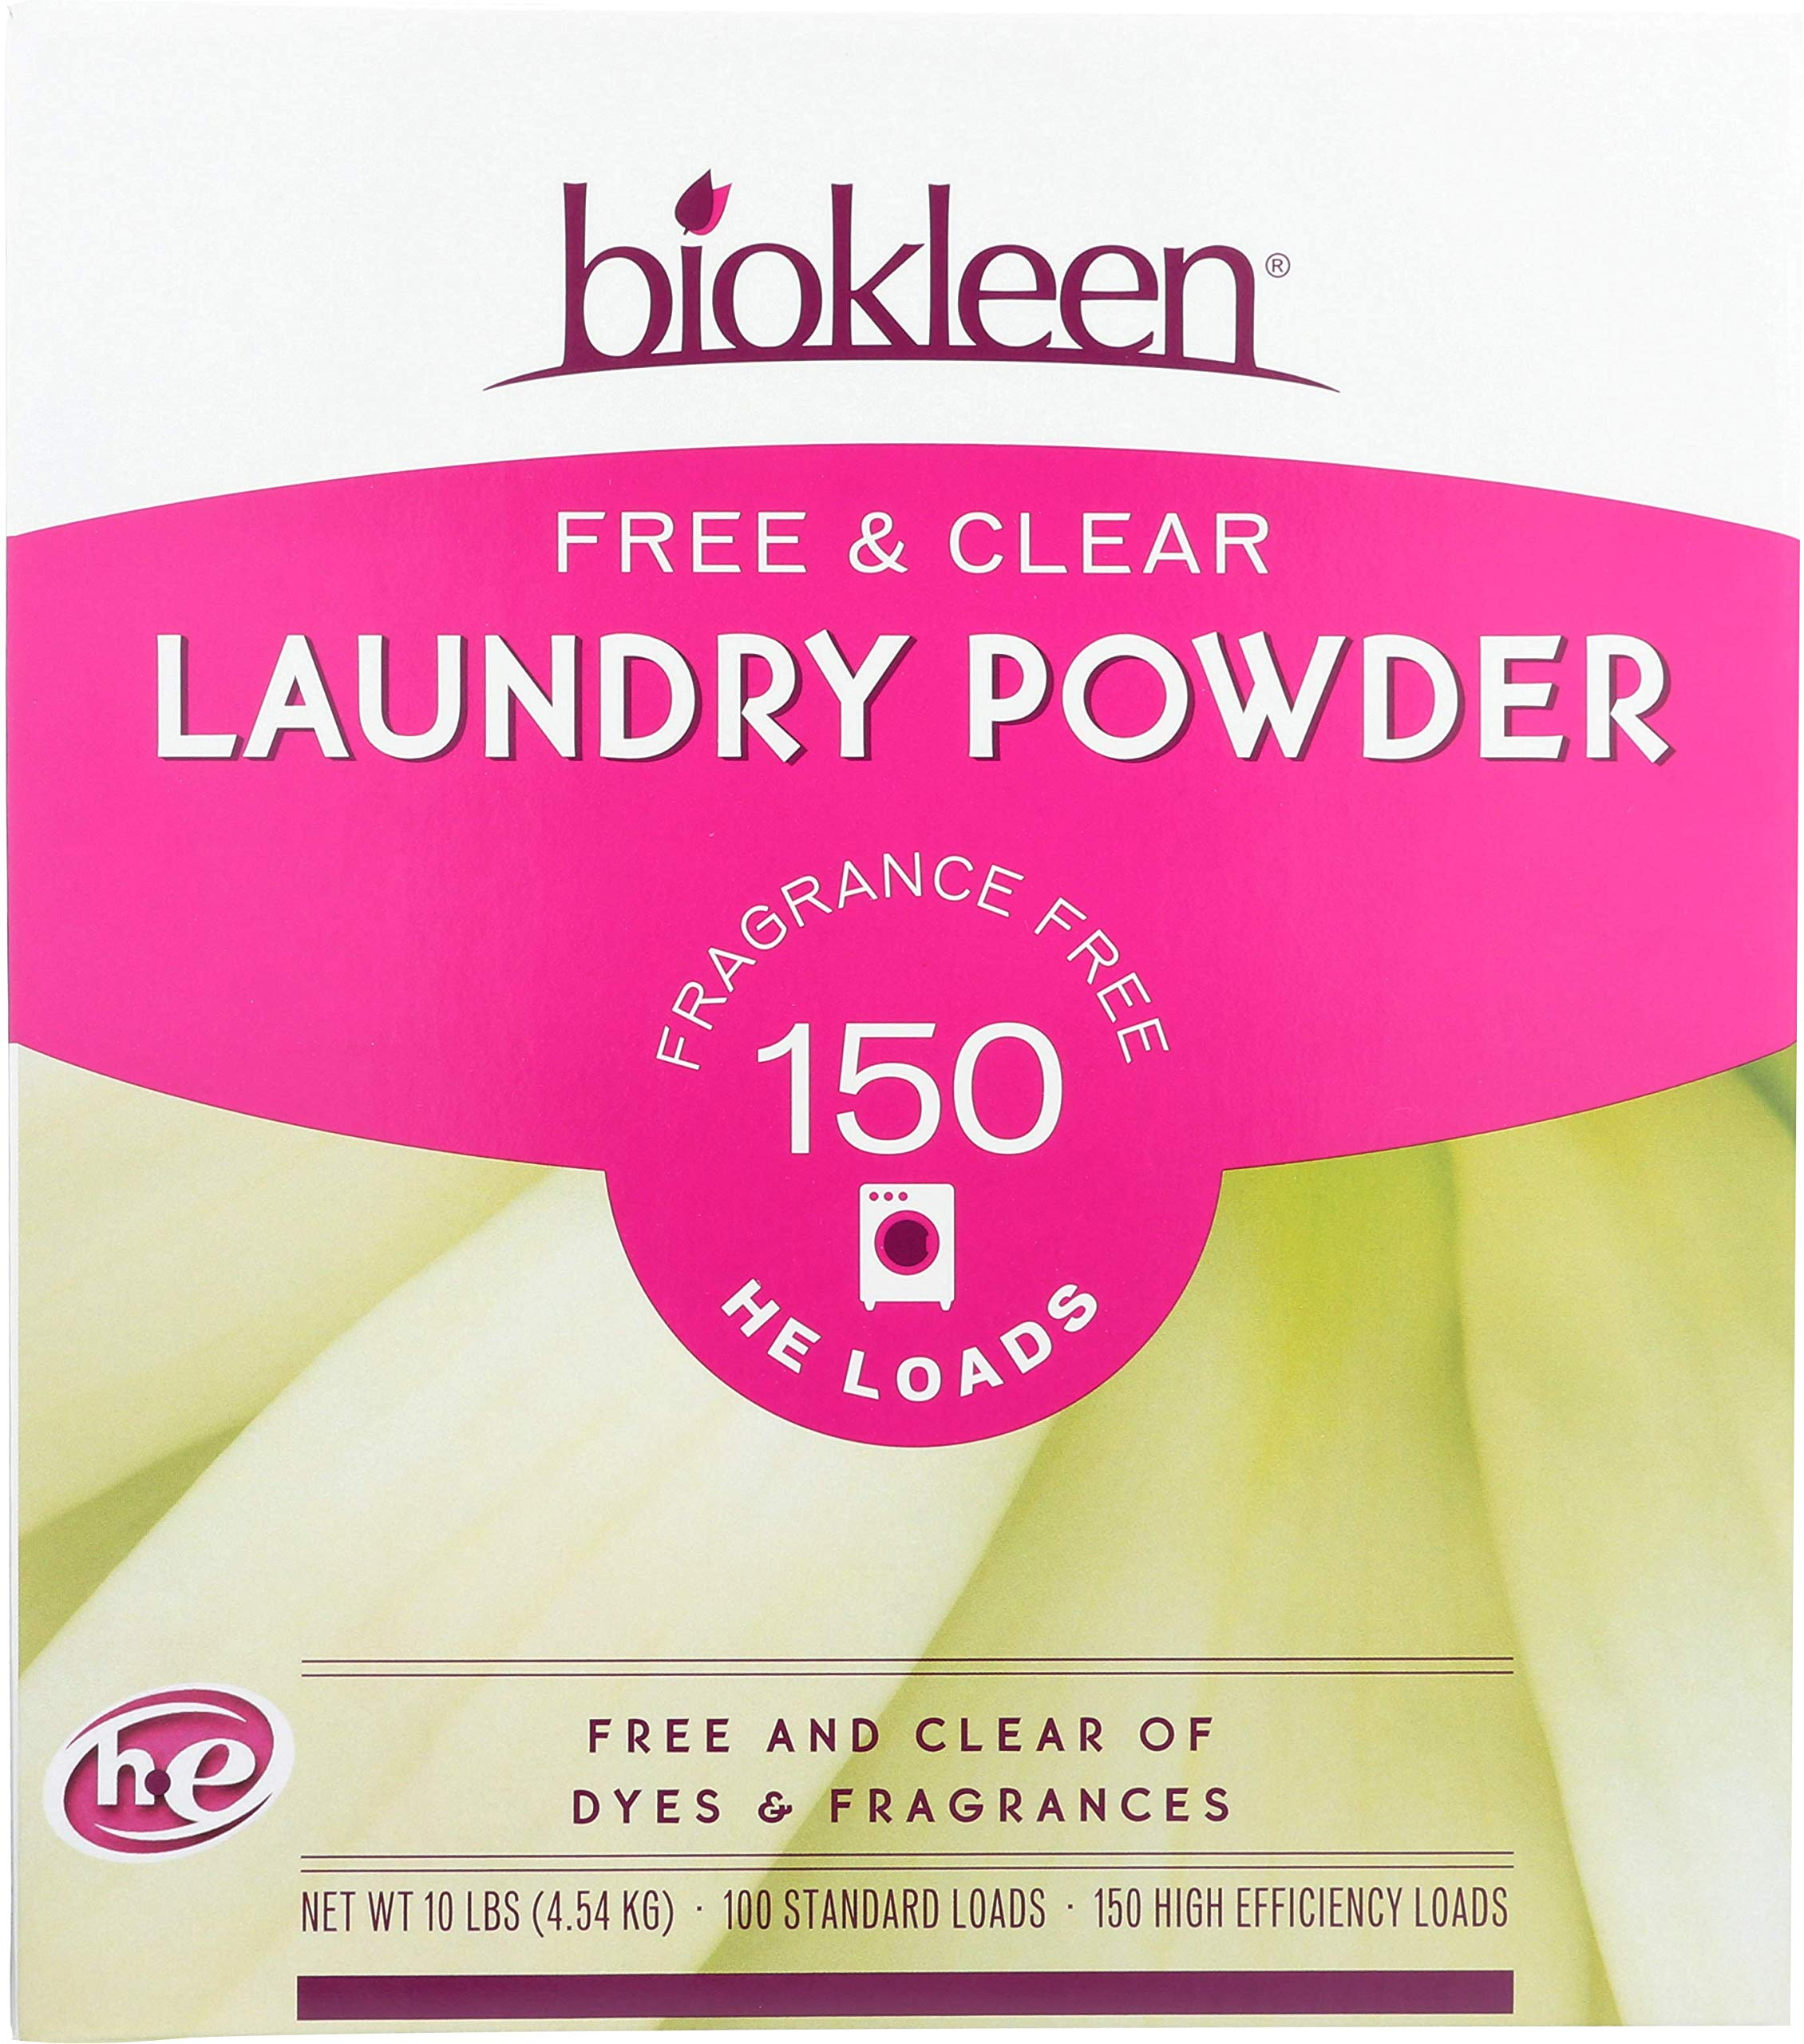 Biokleen Laundry Detergent Powder, Concentrated, Eco-Friendly, Non-Toxic, Plant-Based, No Artificial Fragrance or Preservatives, Free & Clear, Unscented, 10 Pounds - 150 HE Loads/100 Standard Loads by Biokleen